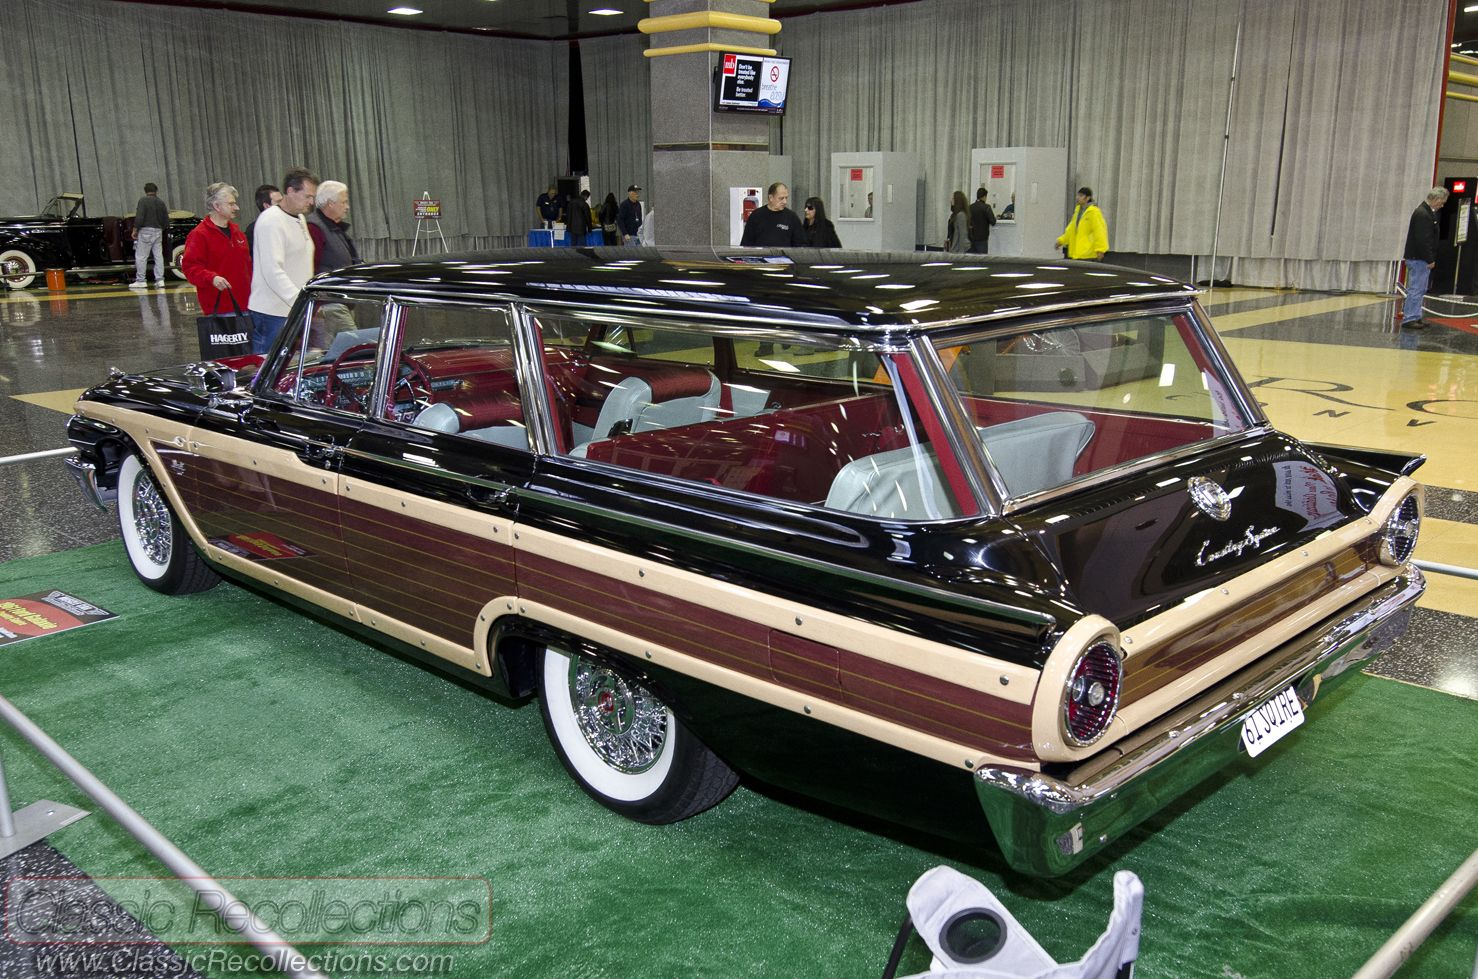 949037b9d8238a55ba20d4b735e87f7b 1972 ford country squire station wagon submitted by that hartford 1969 Ford Country Squire at nearapp.co